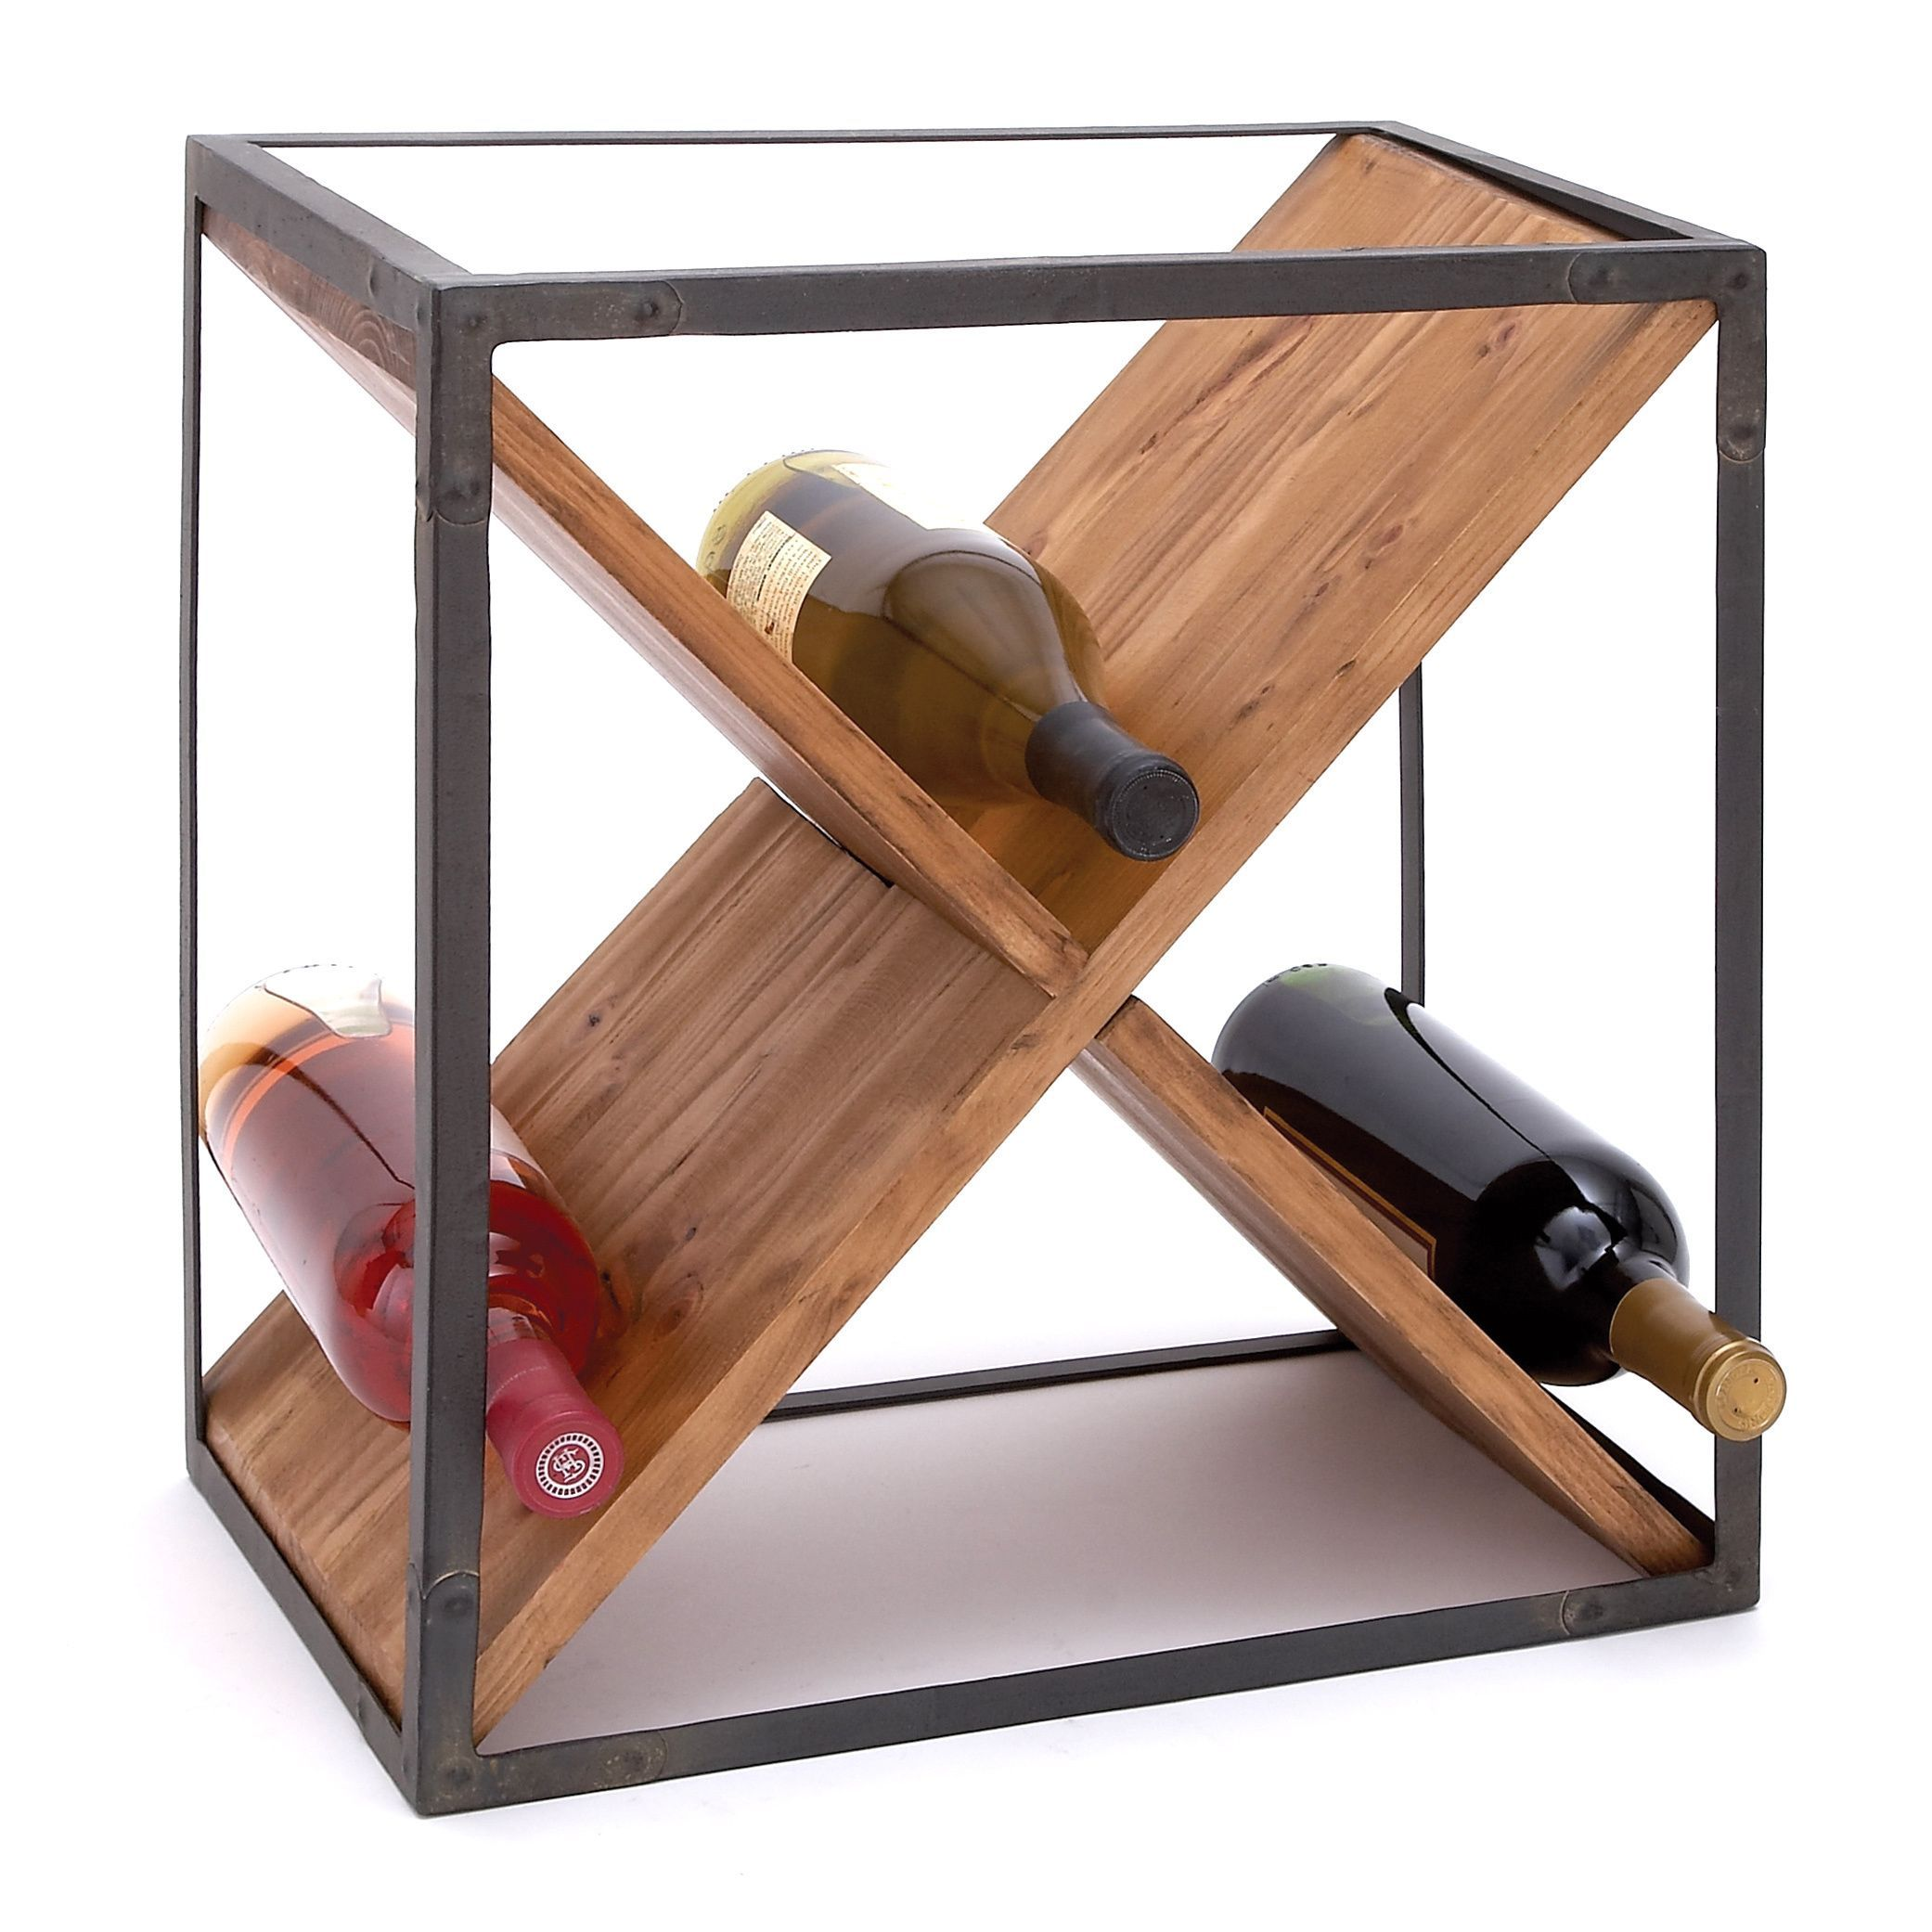 Modern 16 X 15 Inch Square Metal And Wood Wine Rack By Studio 350 Wood Wine Racks Table Top Wine Rack Wine Bottle Storage